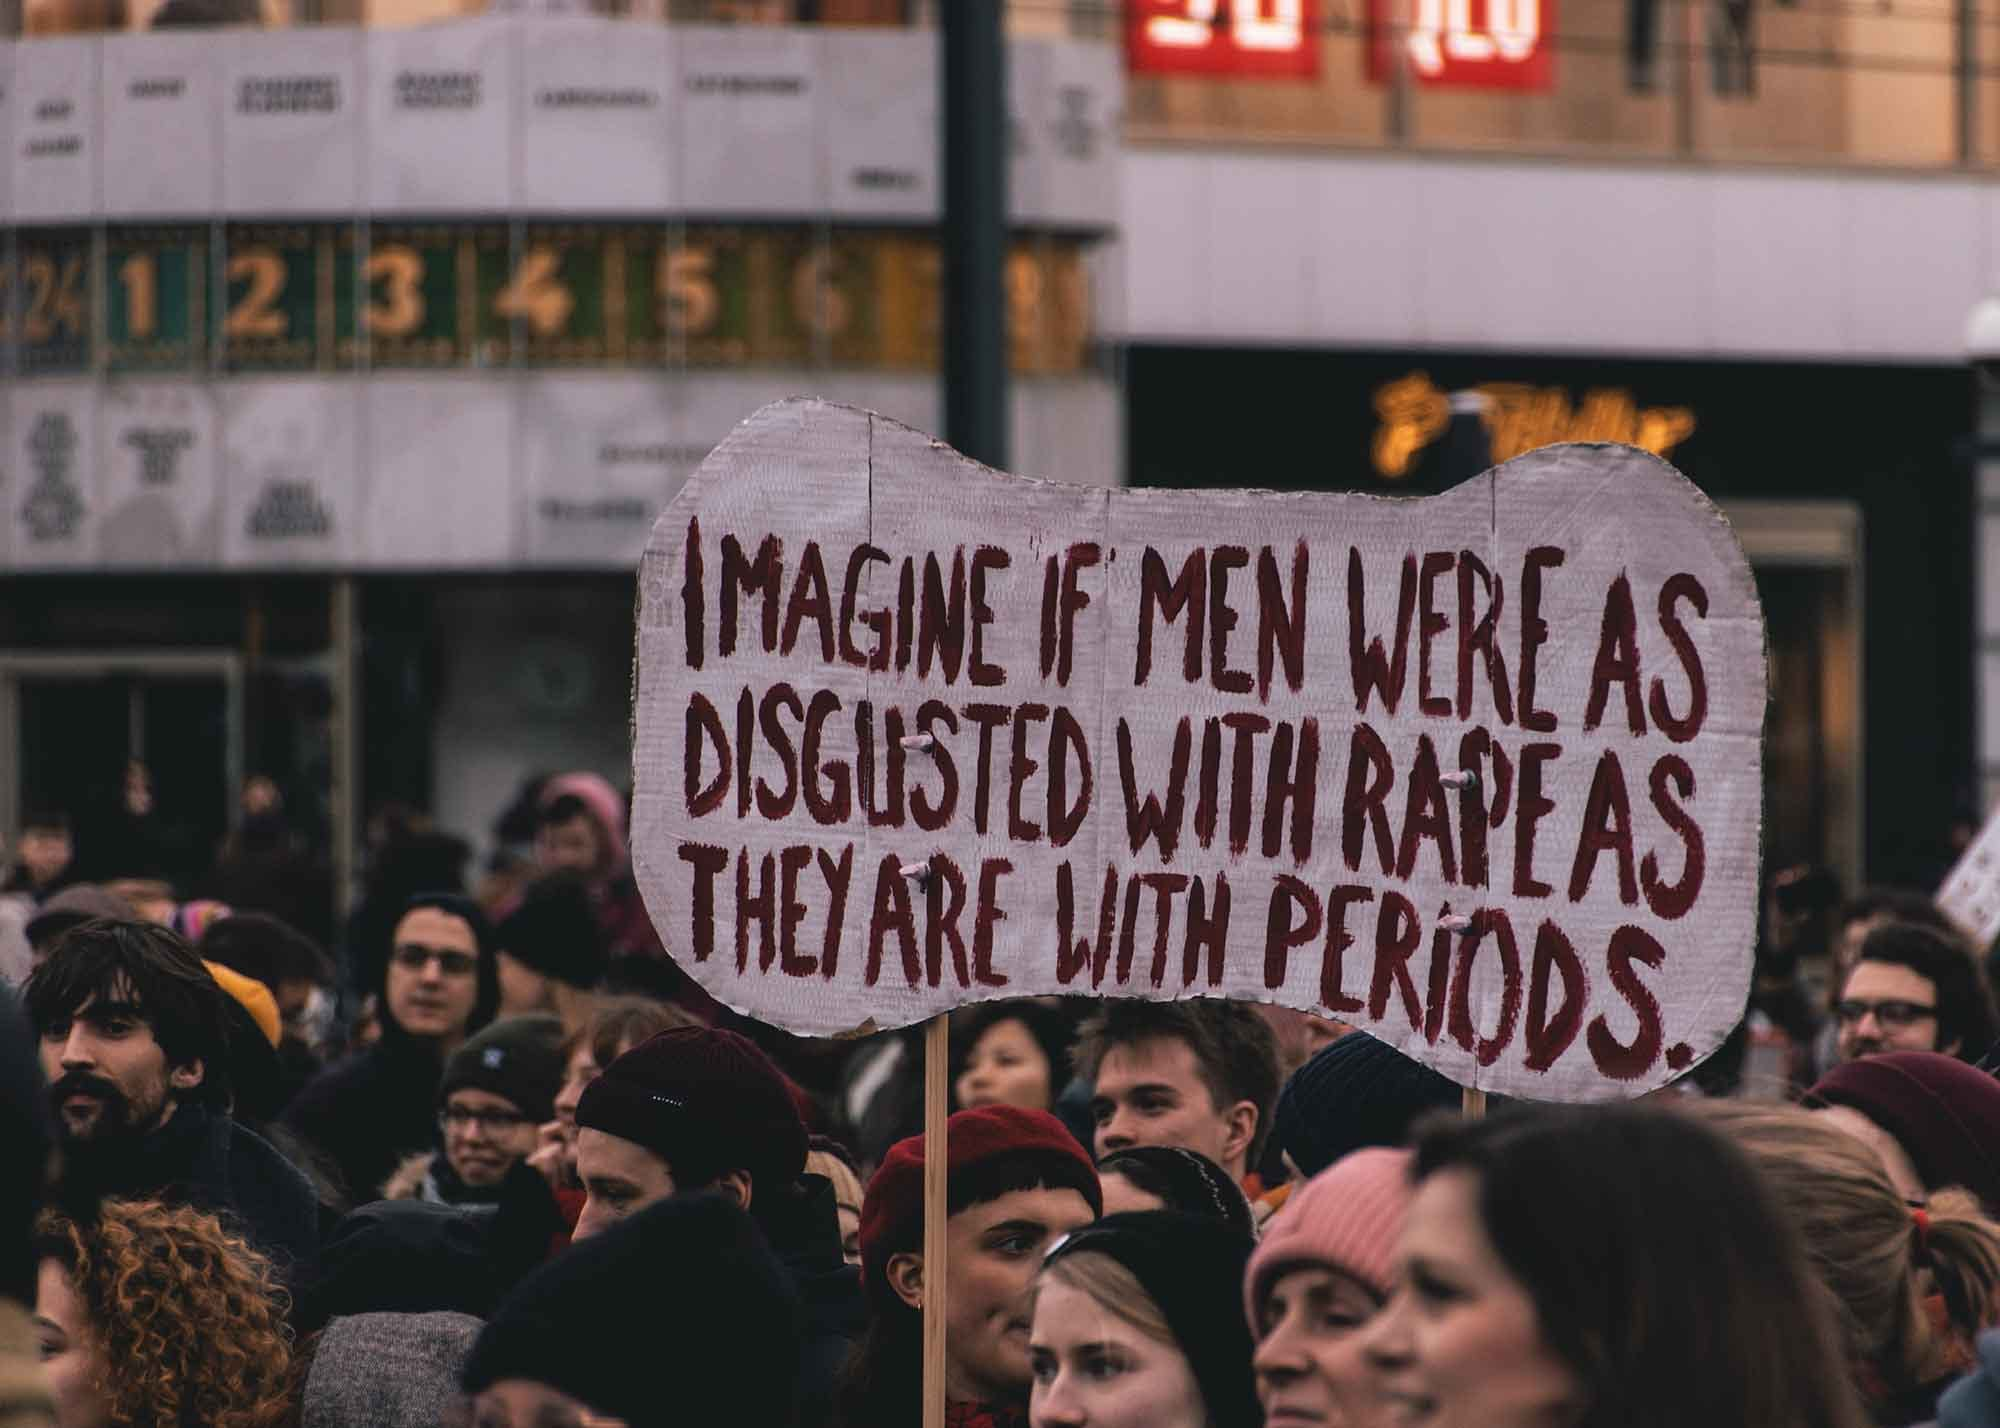 A woman holding a sign at a protest about rape